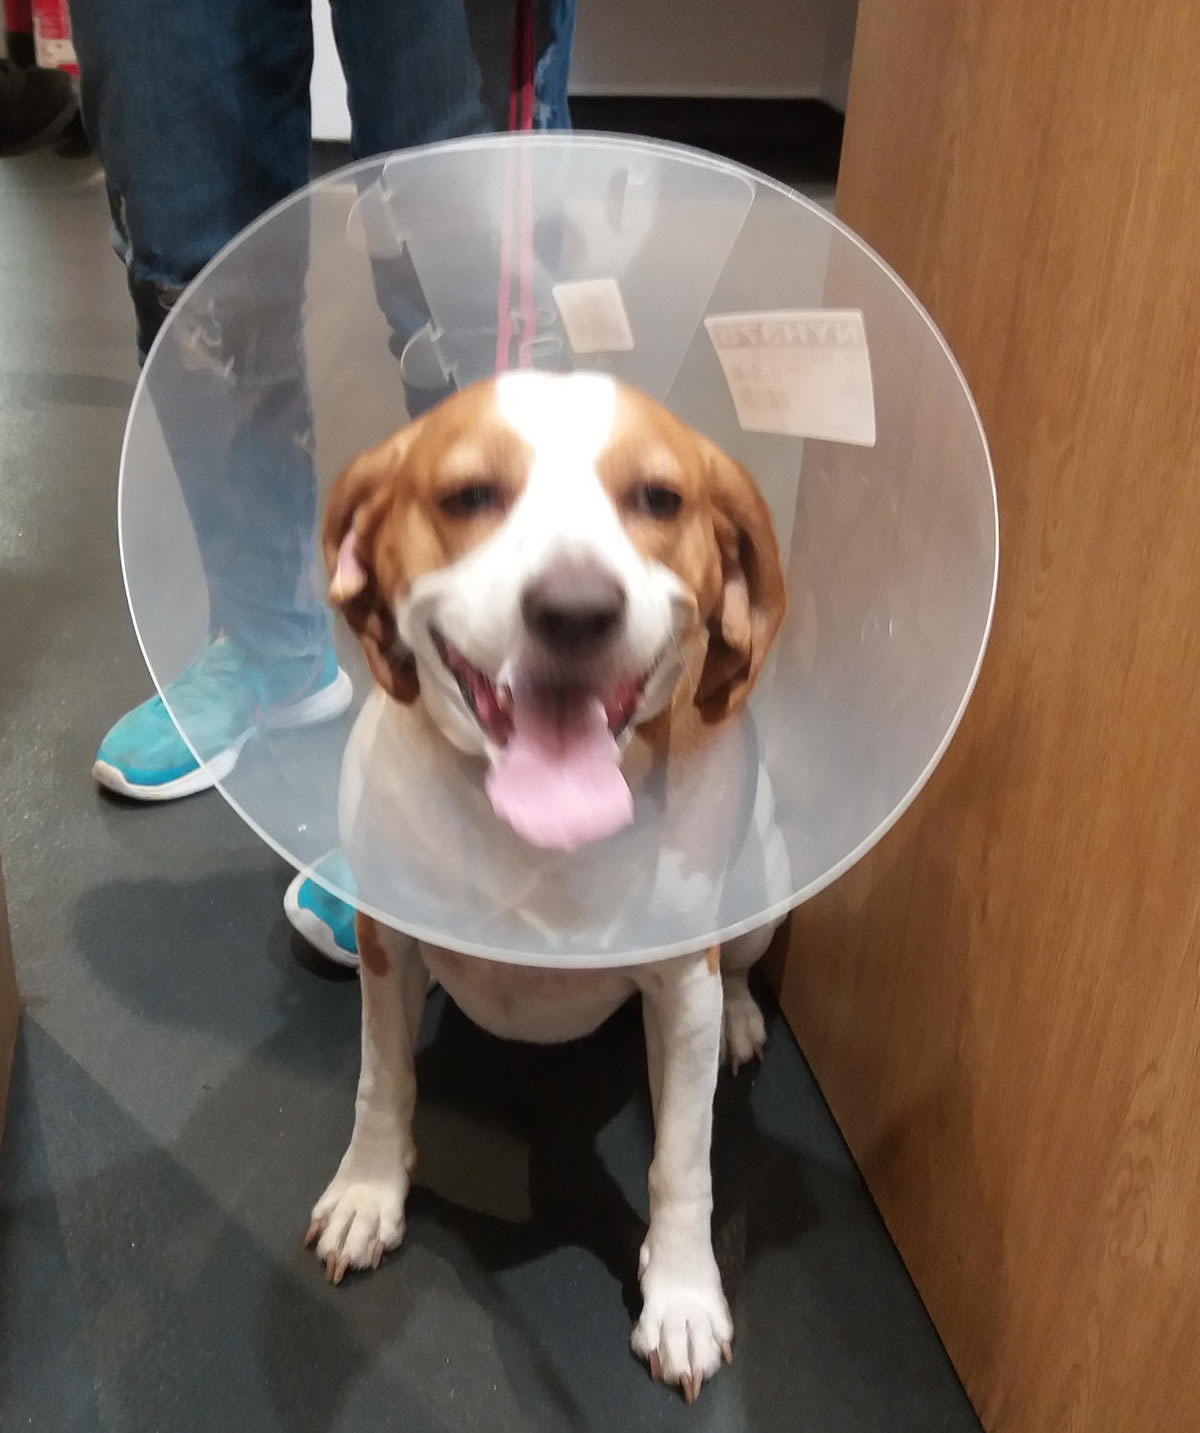 Dog in treatment